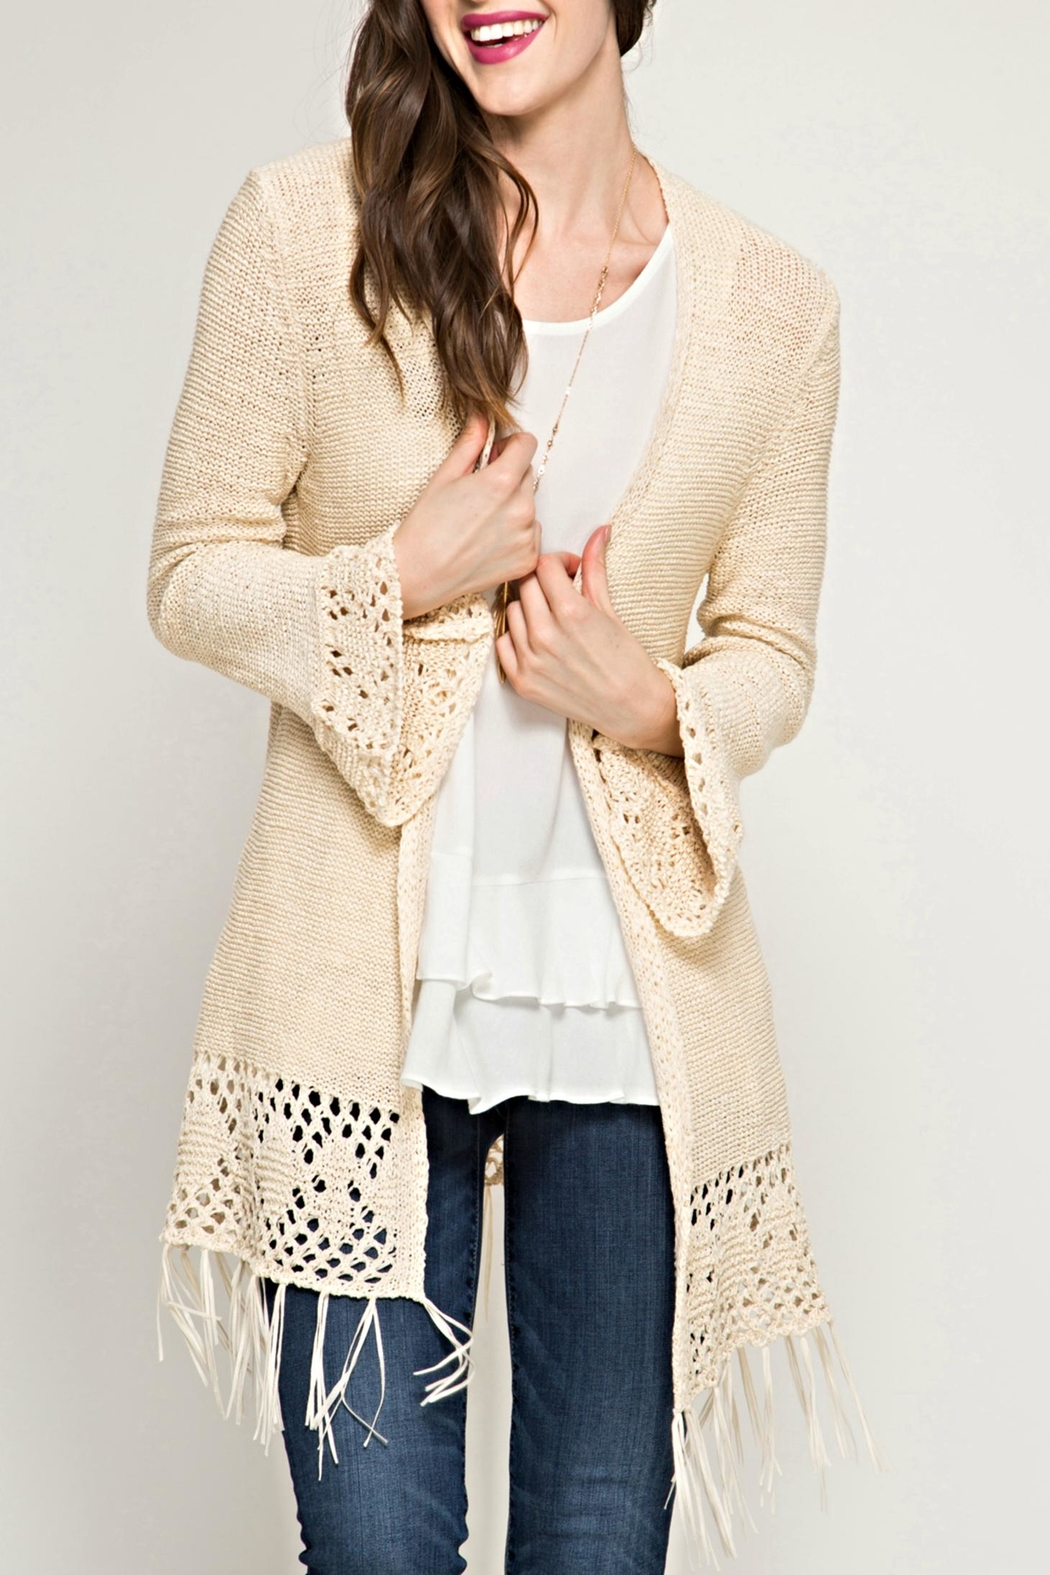 She   Sky Crochet Fringe Cardigan from Chicago by What She Wants ...